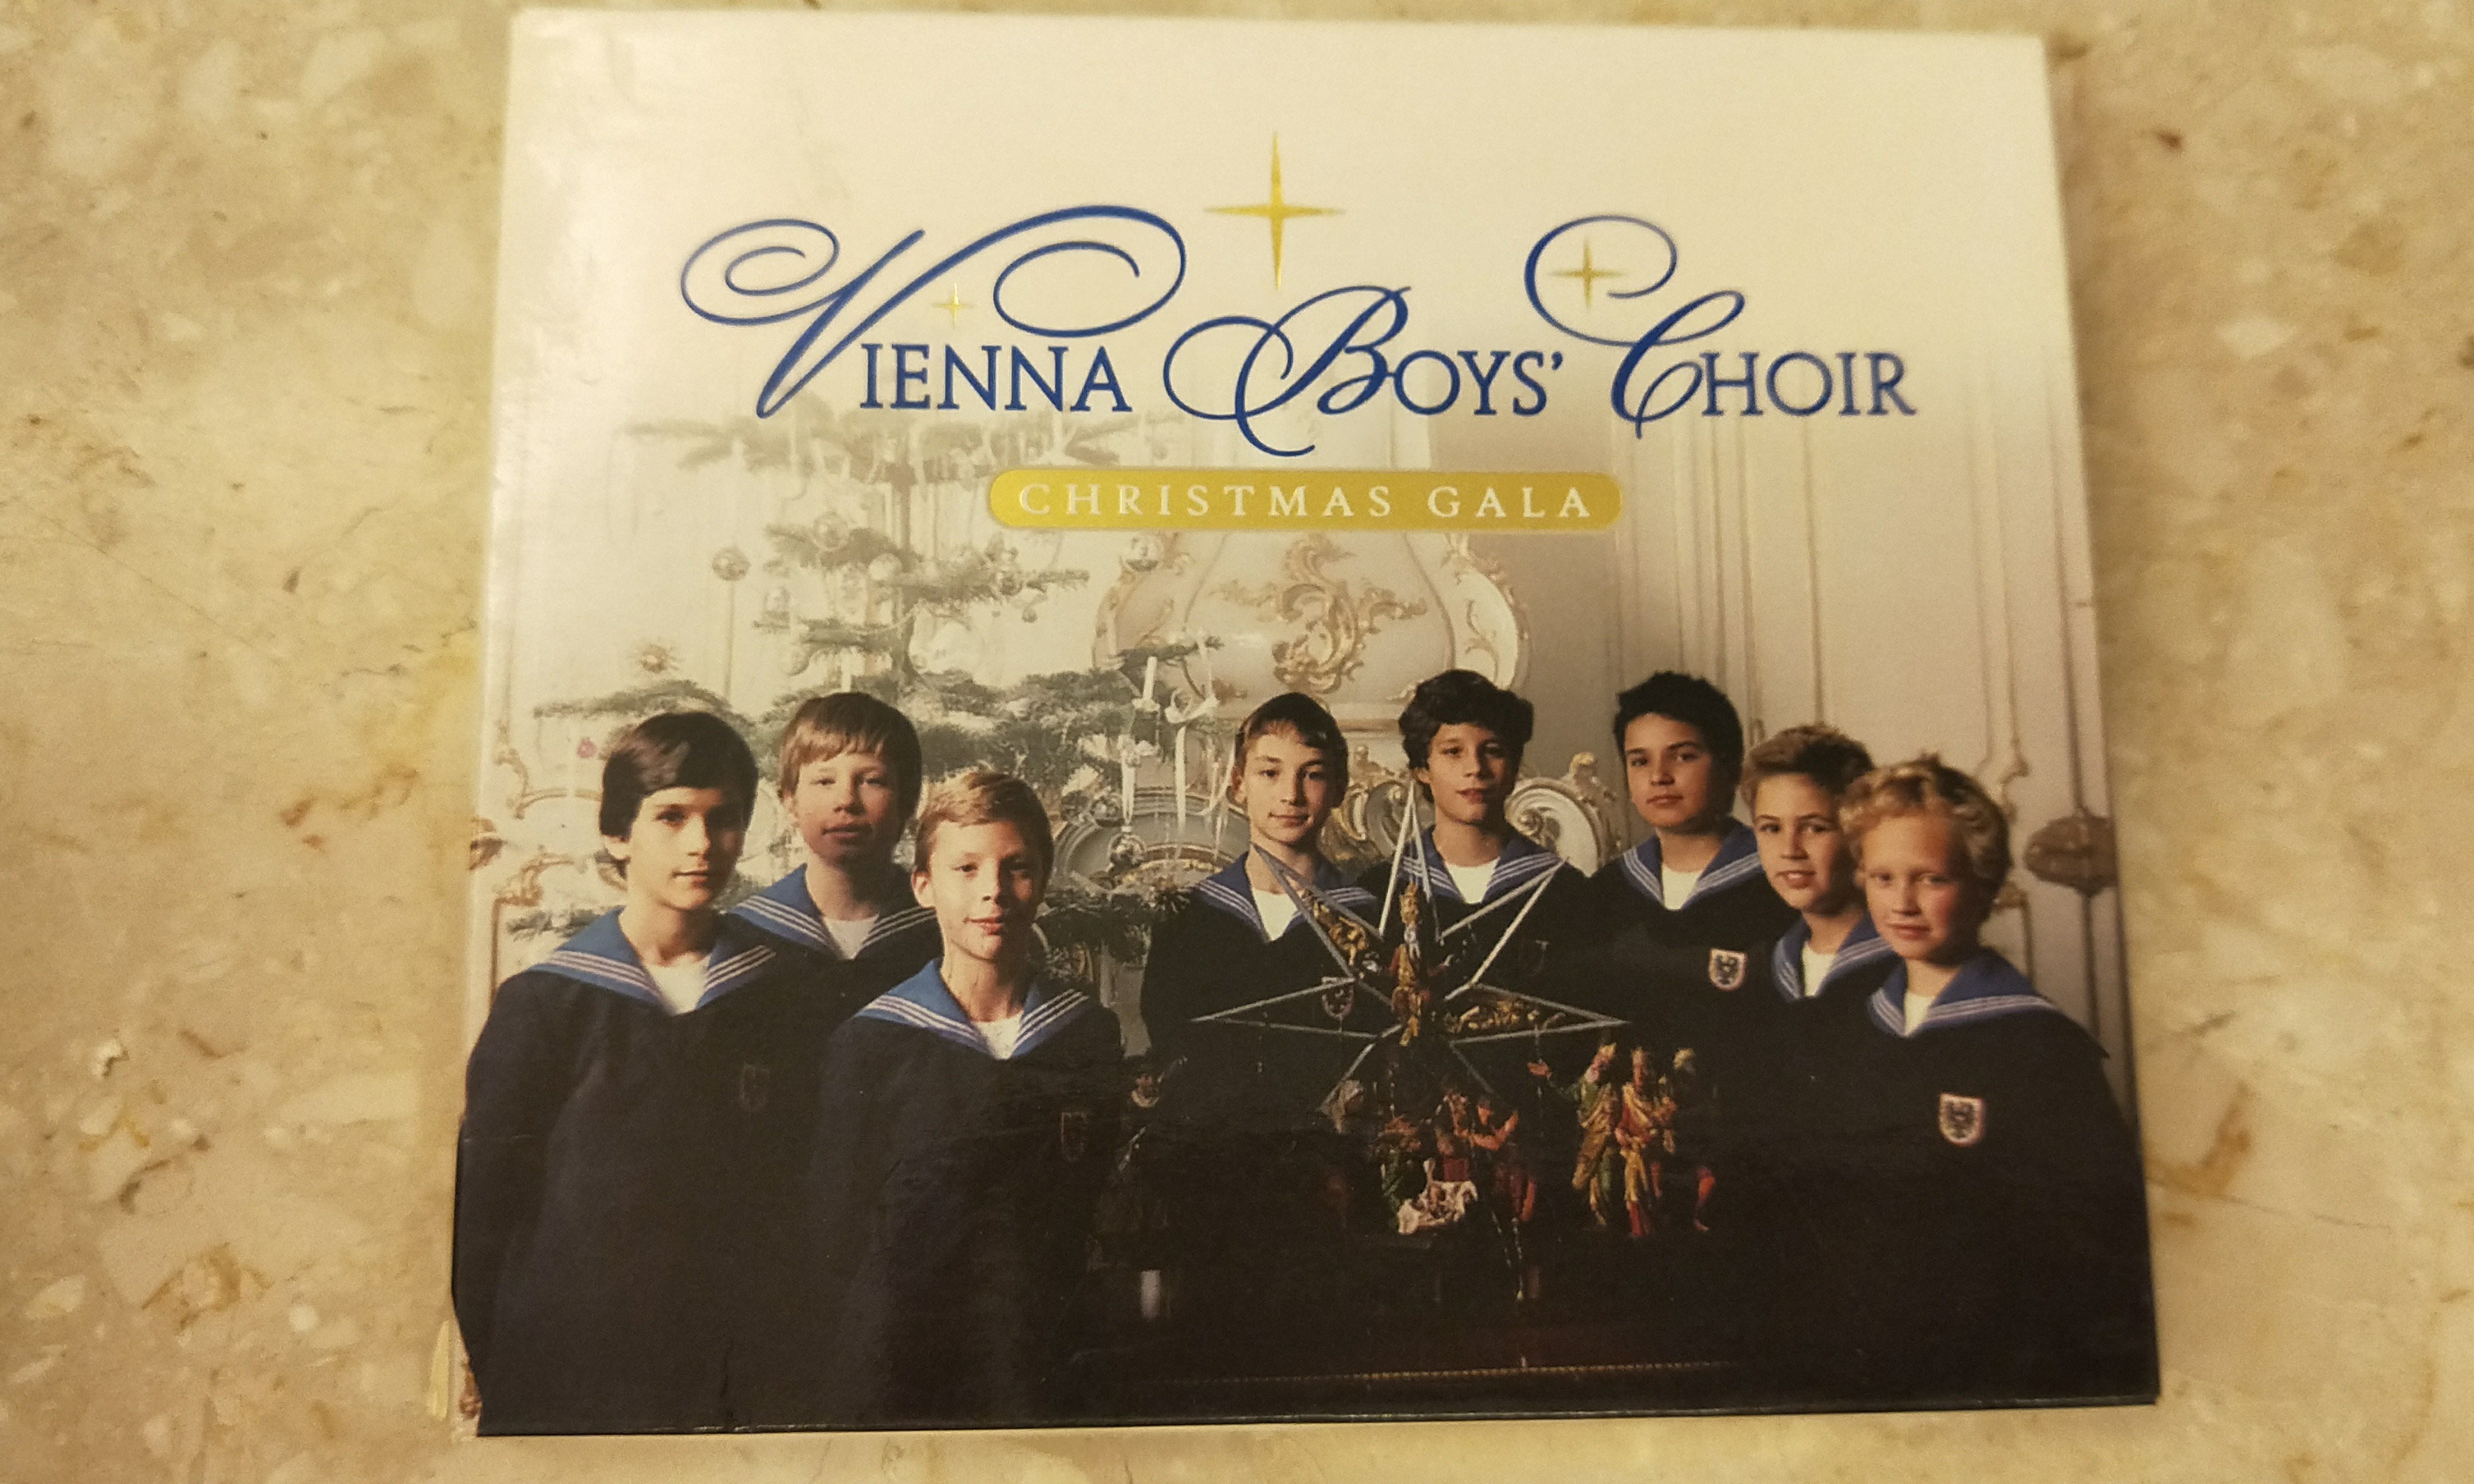 Vienna Boys Choir Christmas.Endgameyourexcess Vienna Boys Choir Christmas Gala Cd